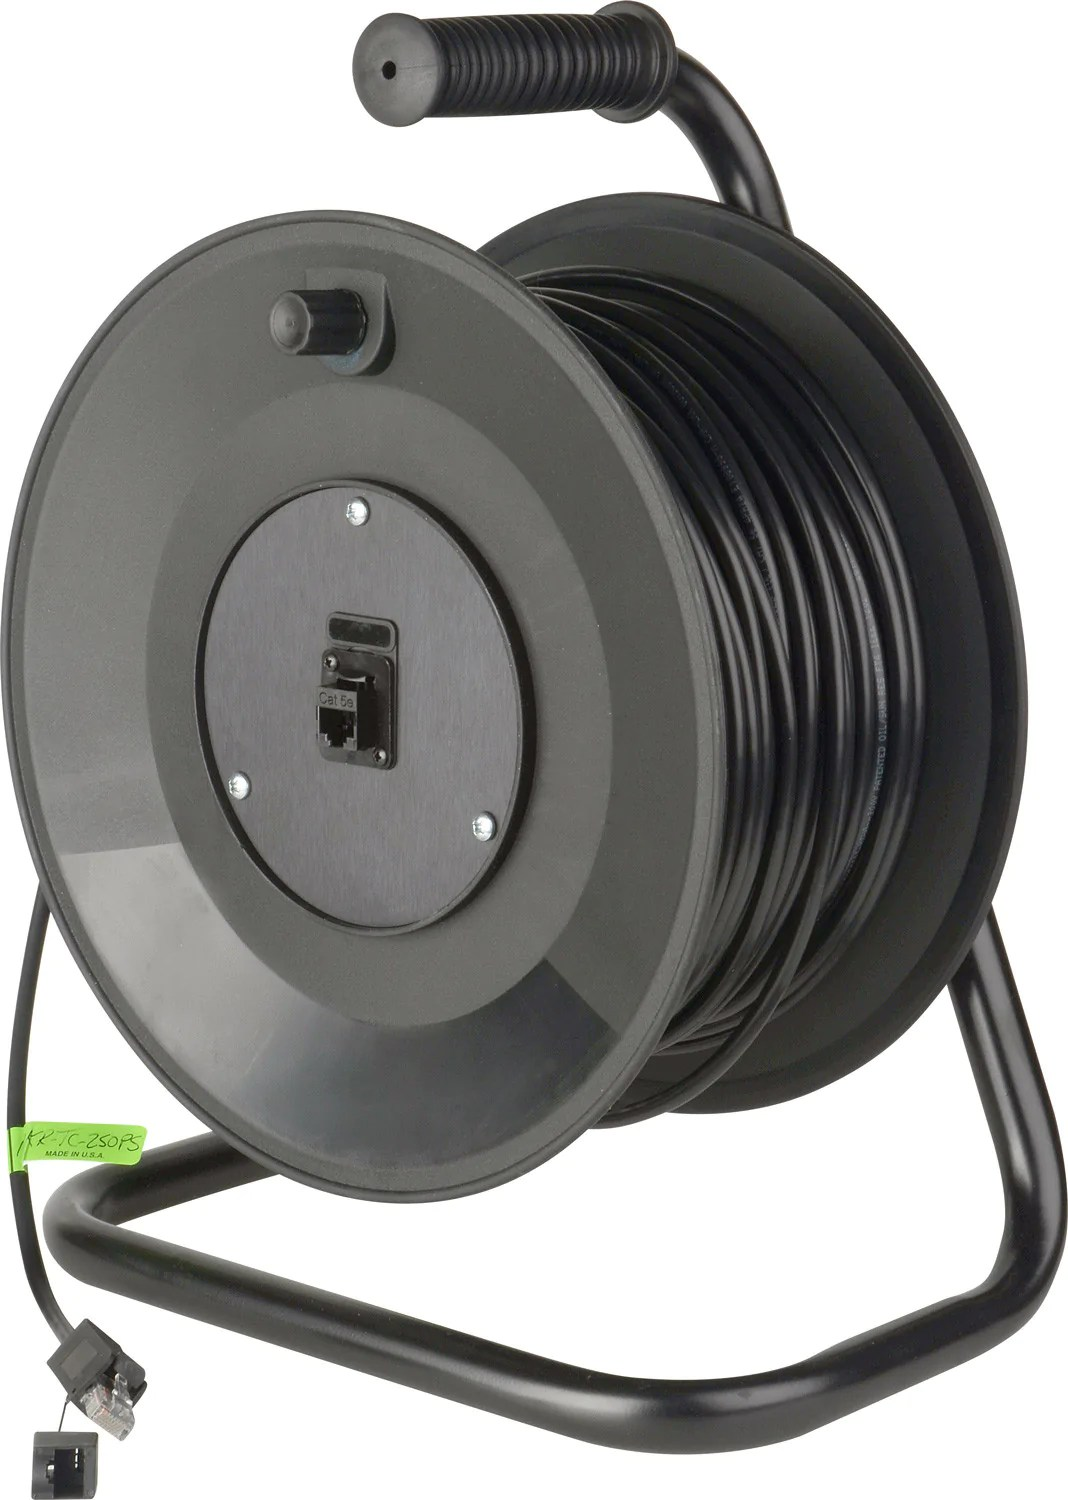 medium resolution of buy cable reel connect n go reel belden 7923a cat5e with pro shell connectors 250ft